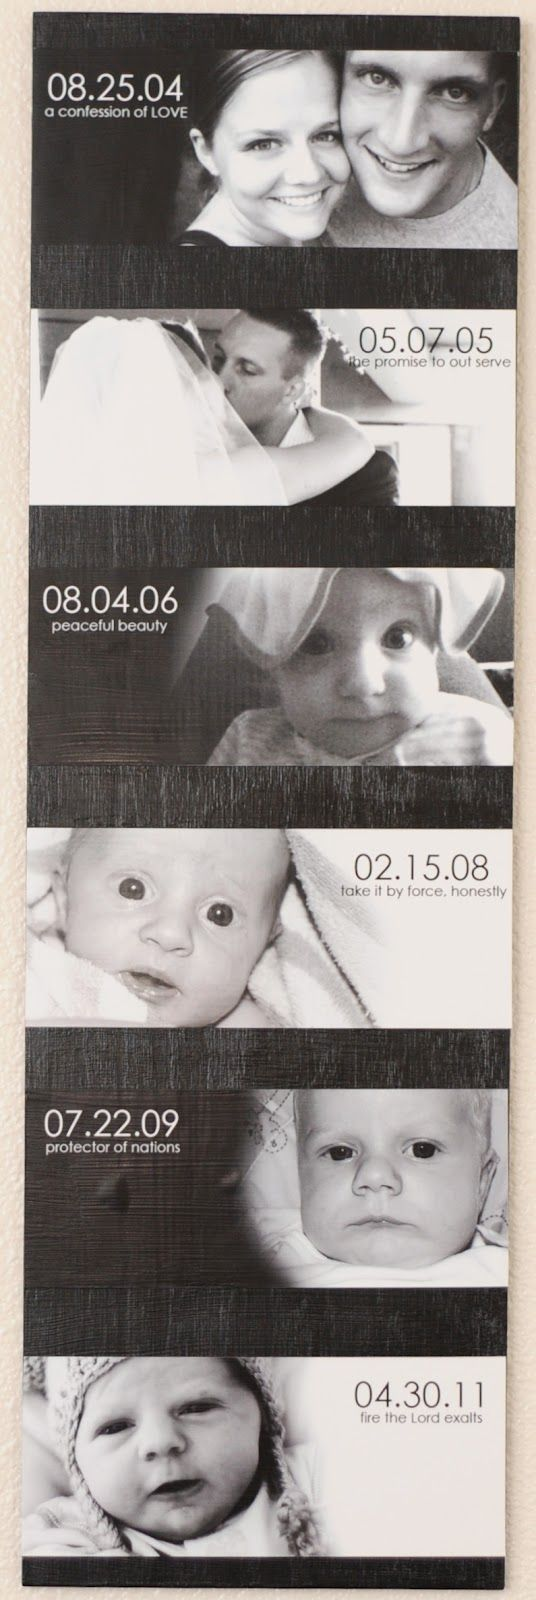 combining Most Important dates in life with photos - I love how they used the meaning of the kids' names in the pictures